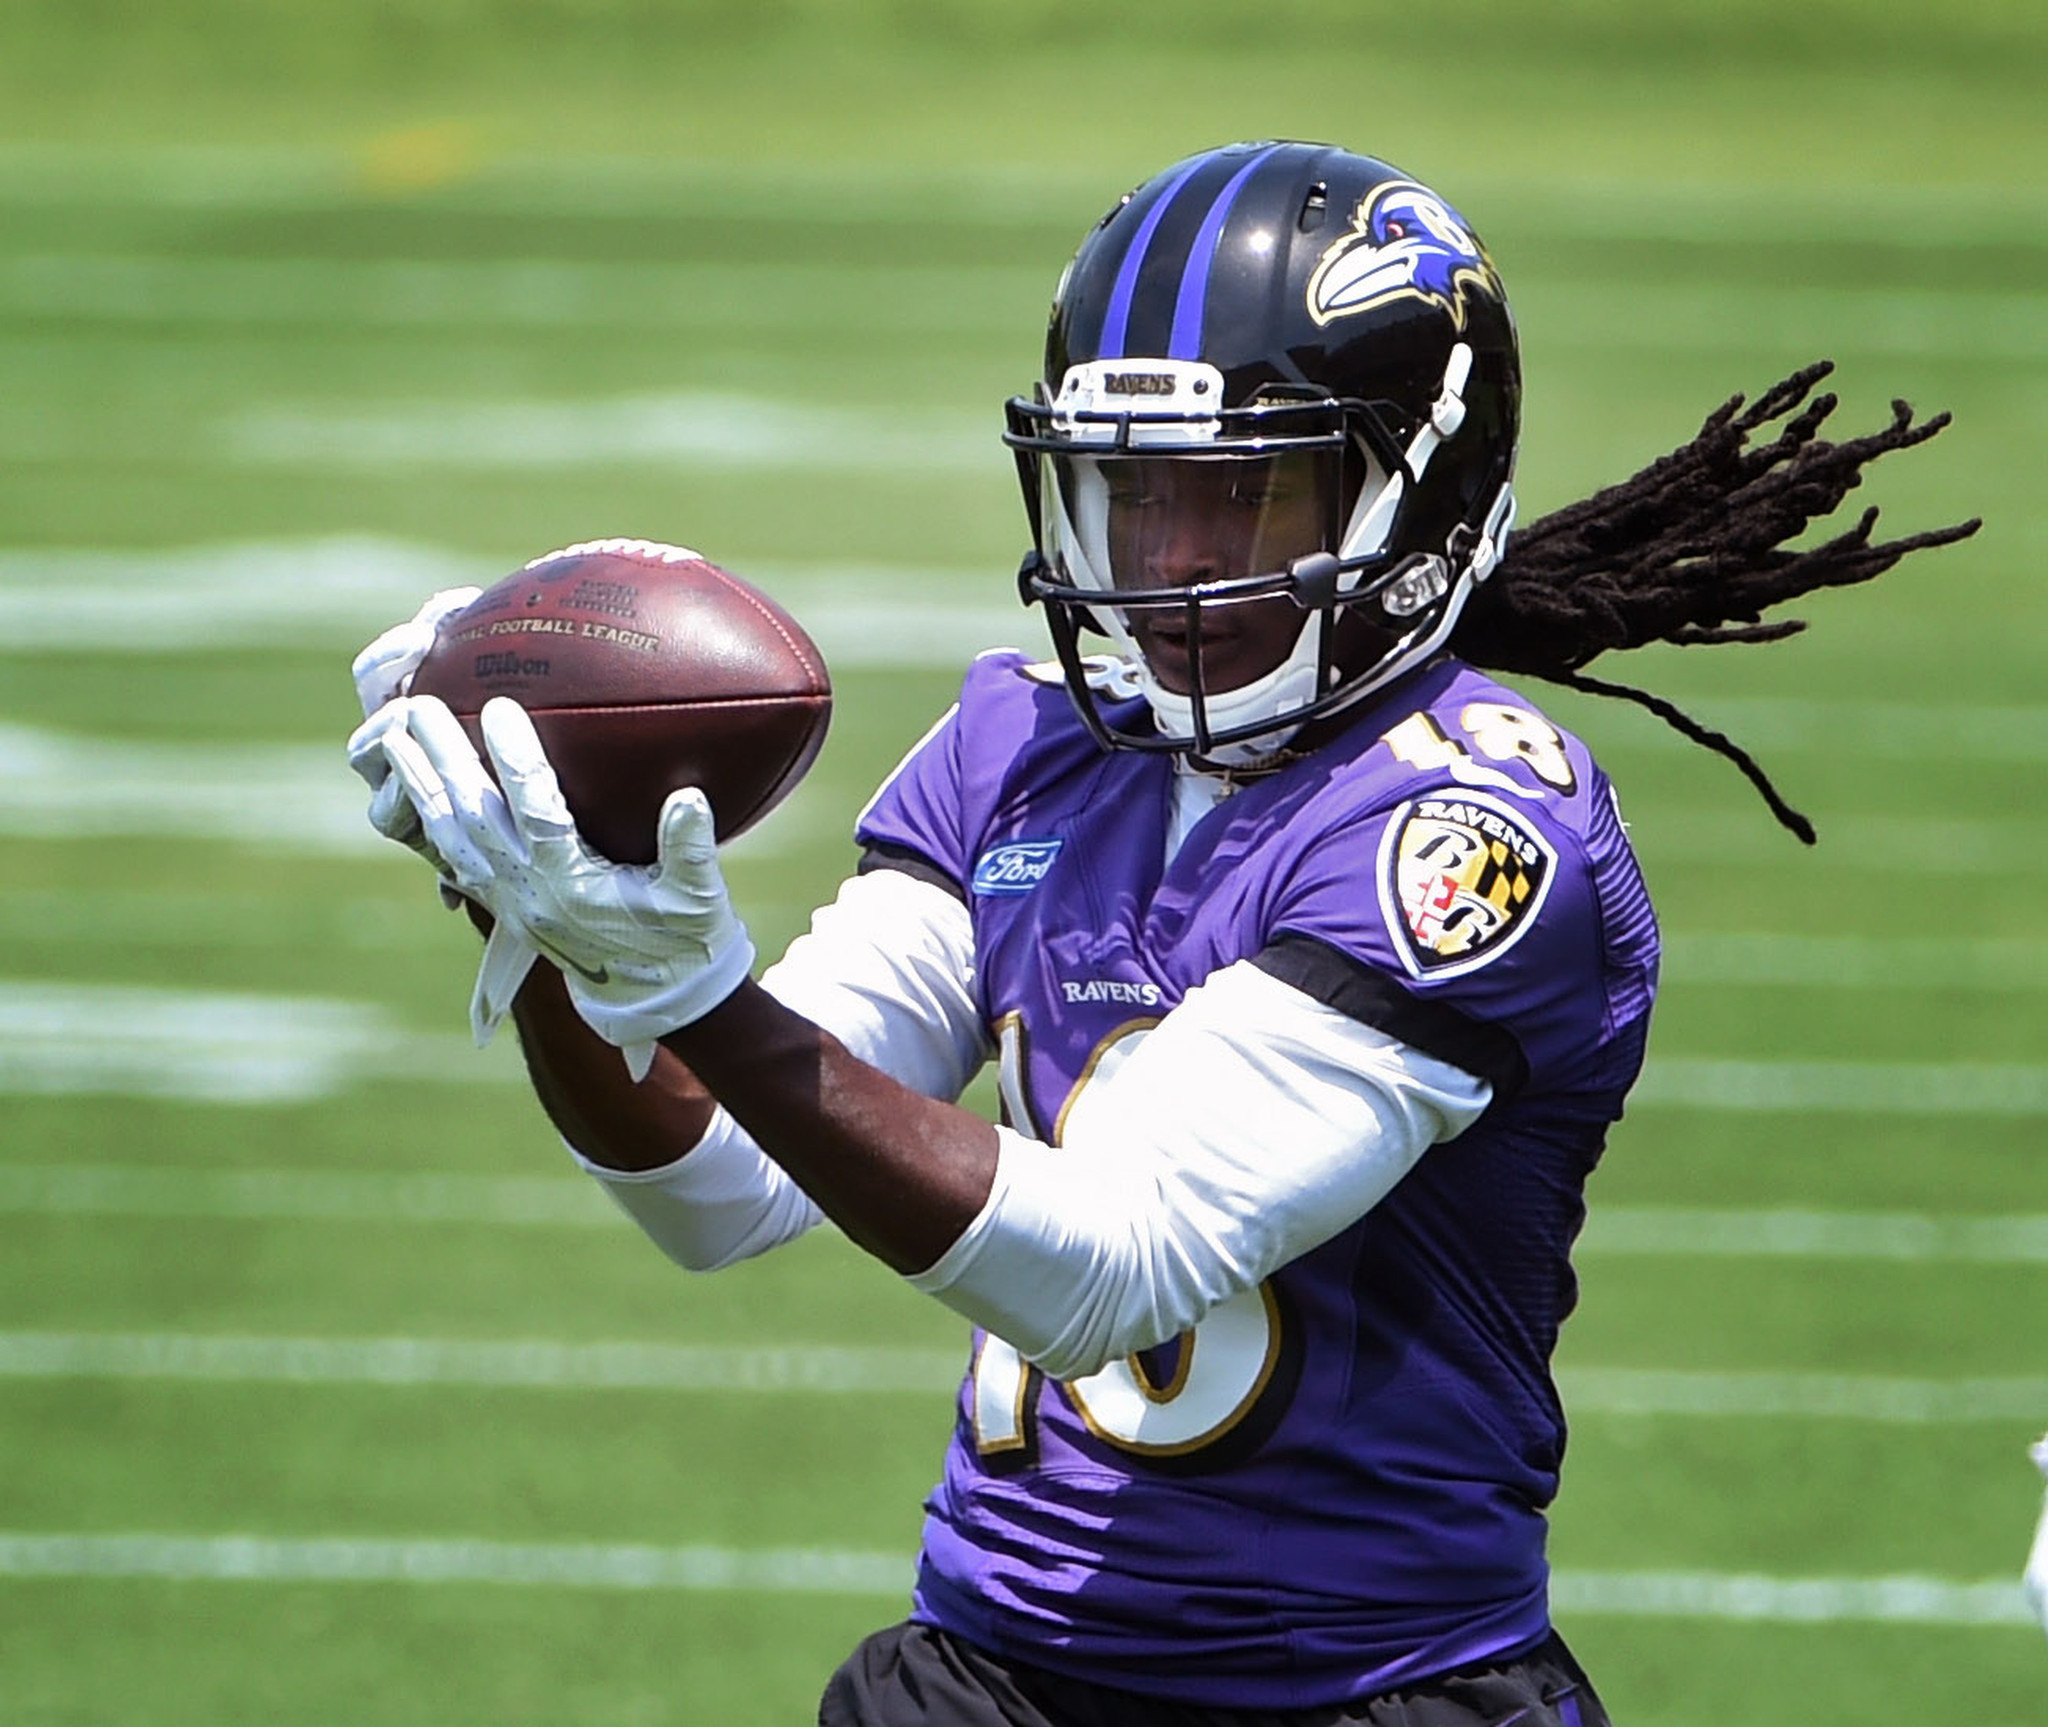 Bal-doctors-comment-on-breshad-perriman-s-injury-and-typical-recovery-for-similar-issues-20160620